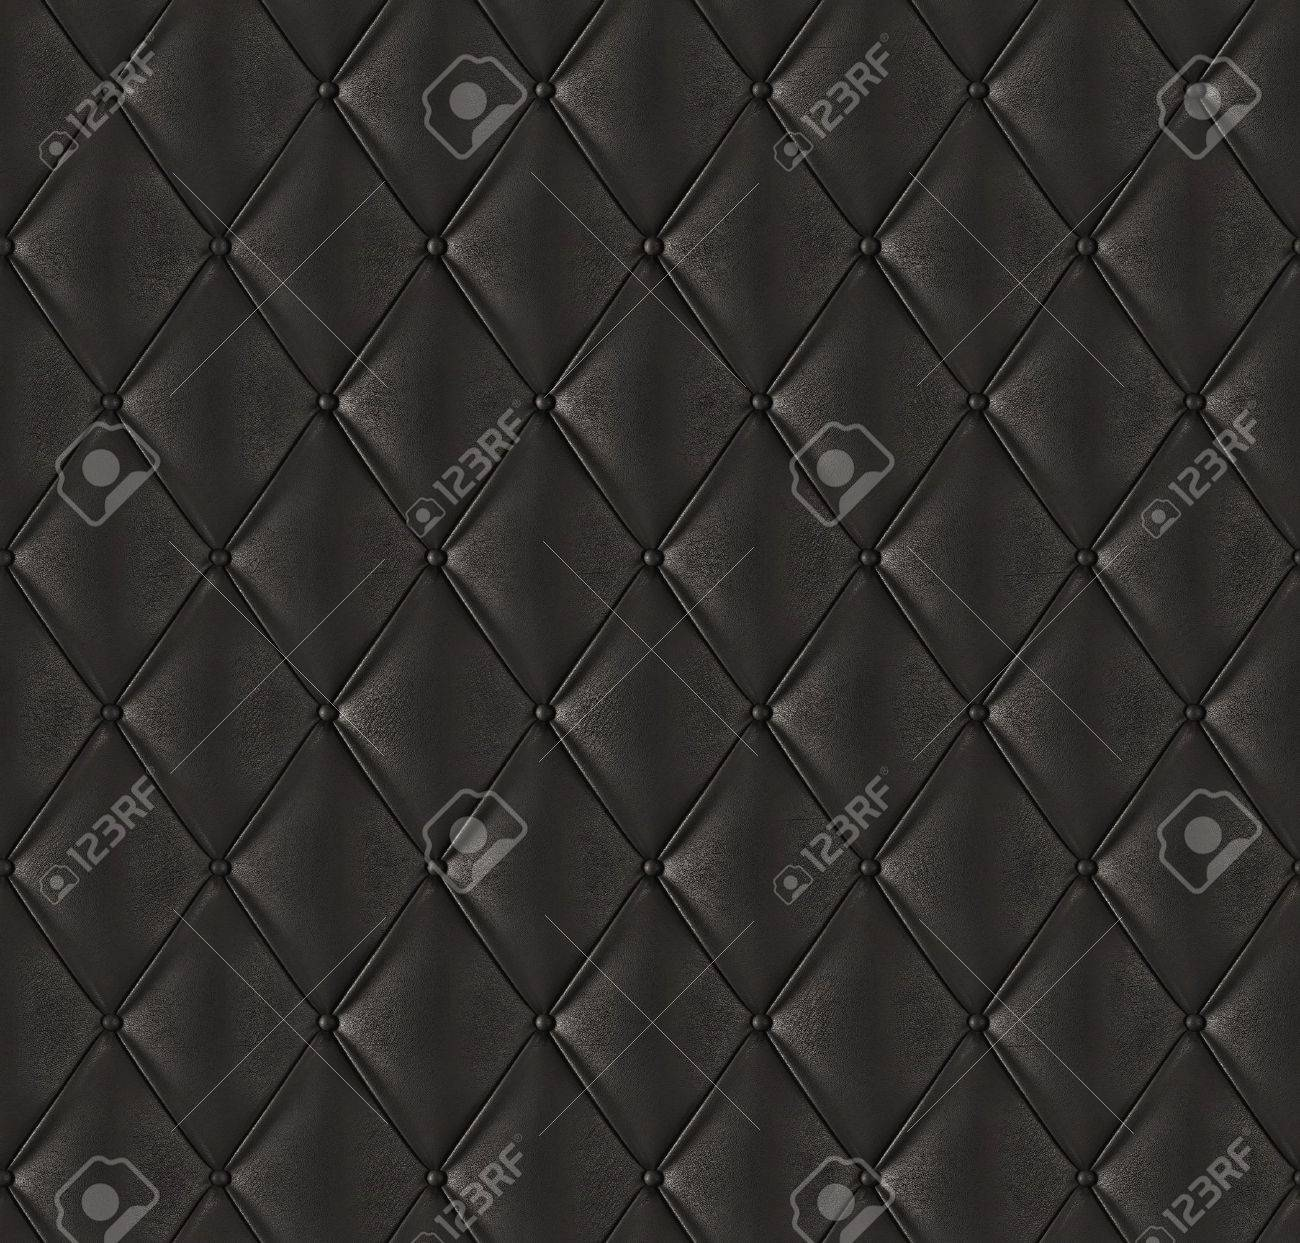 Black Quilted Wallpaper Black quilted leather